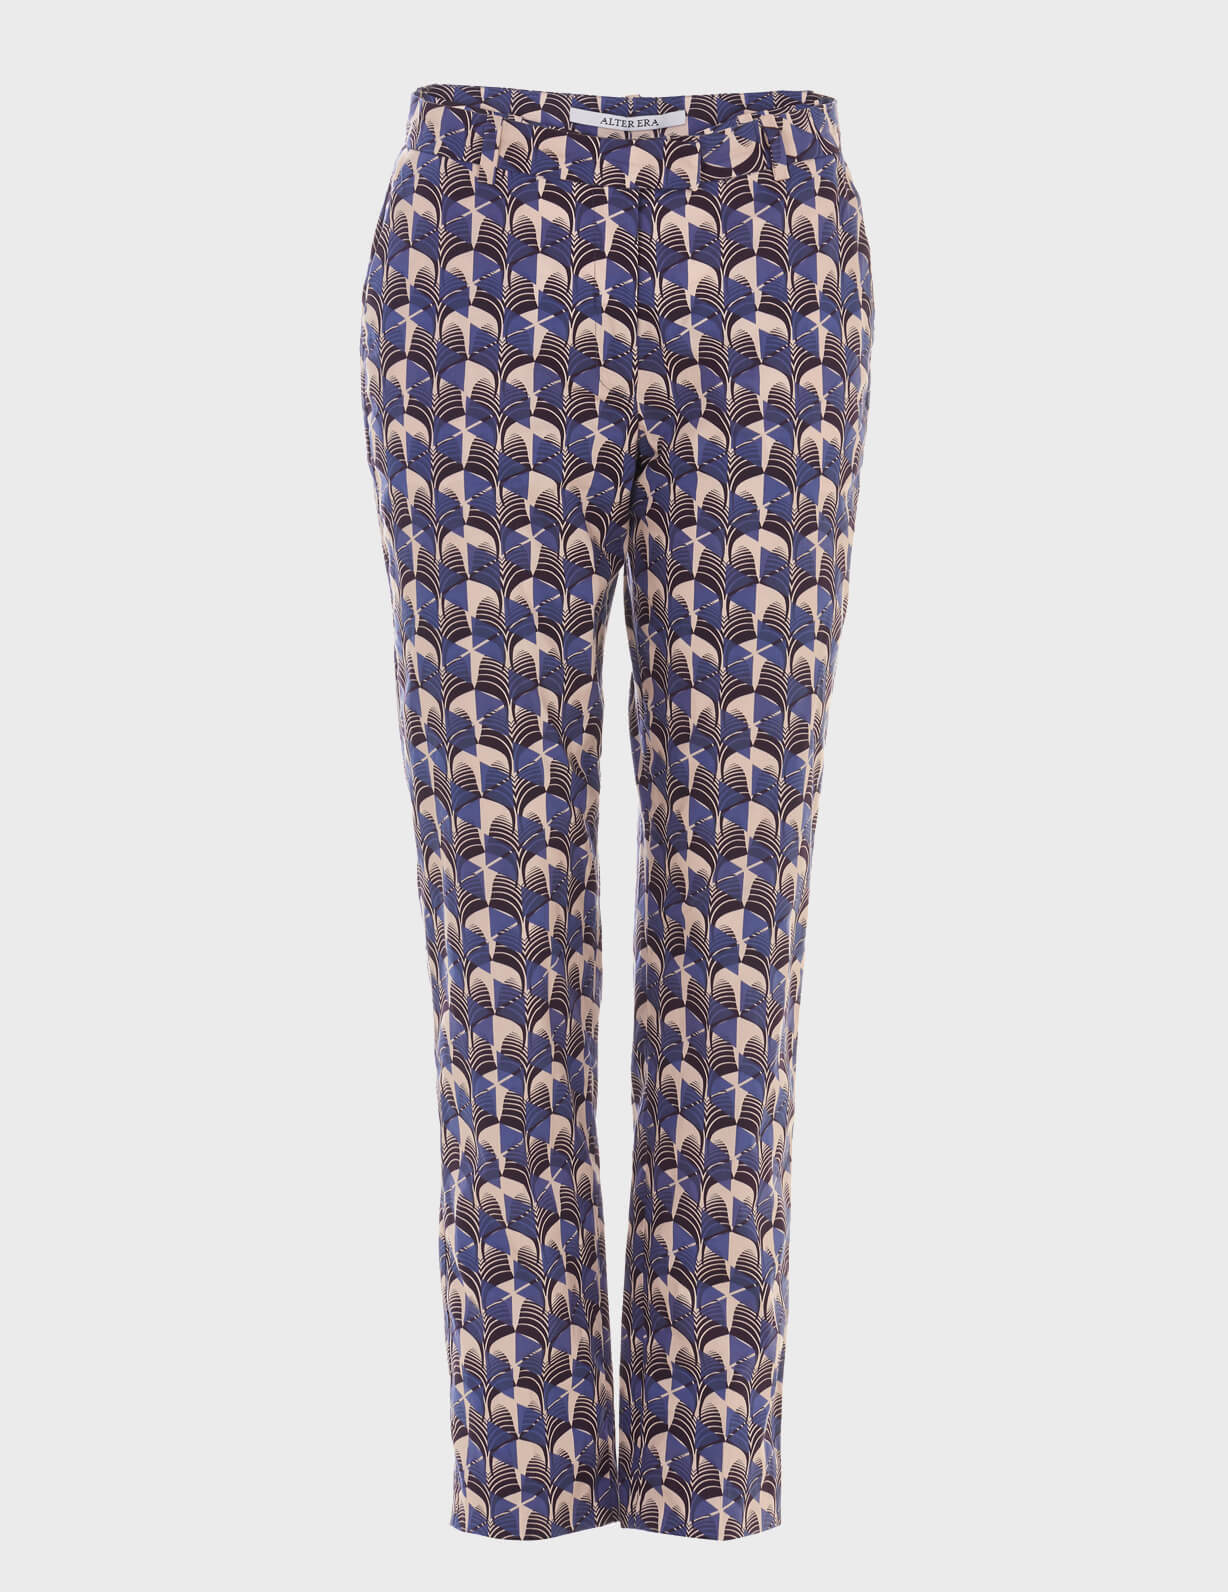 alter-era-ss18-rudo-palms-printed-cotton-straight-leg-trousers-front.jpg